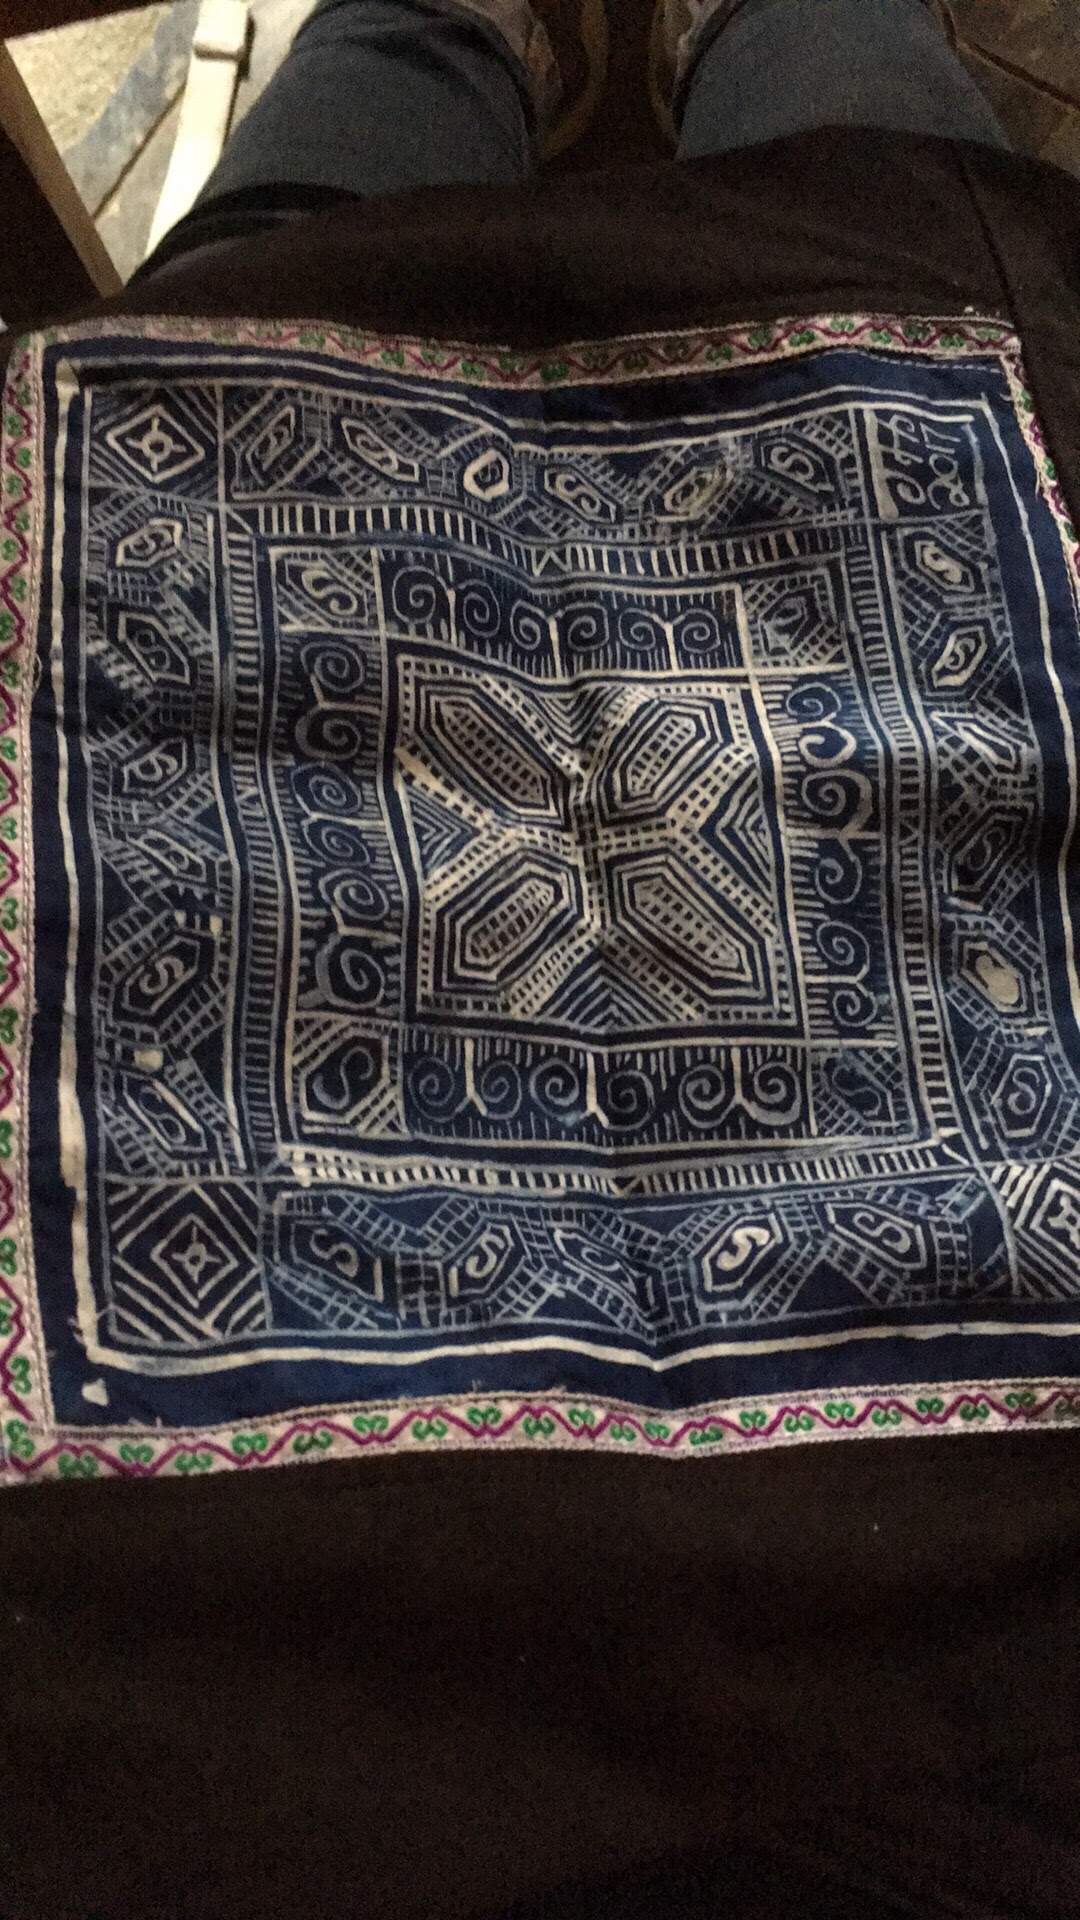 It was dyed in Indigo overnight, then washed and sewn into a pillow